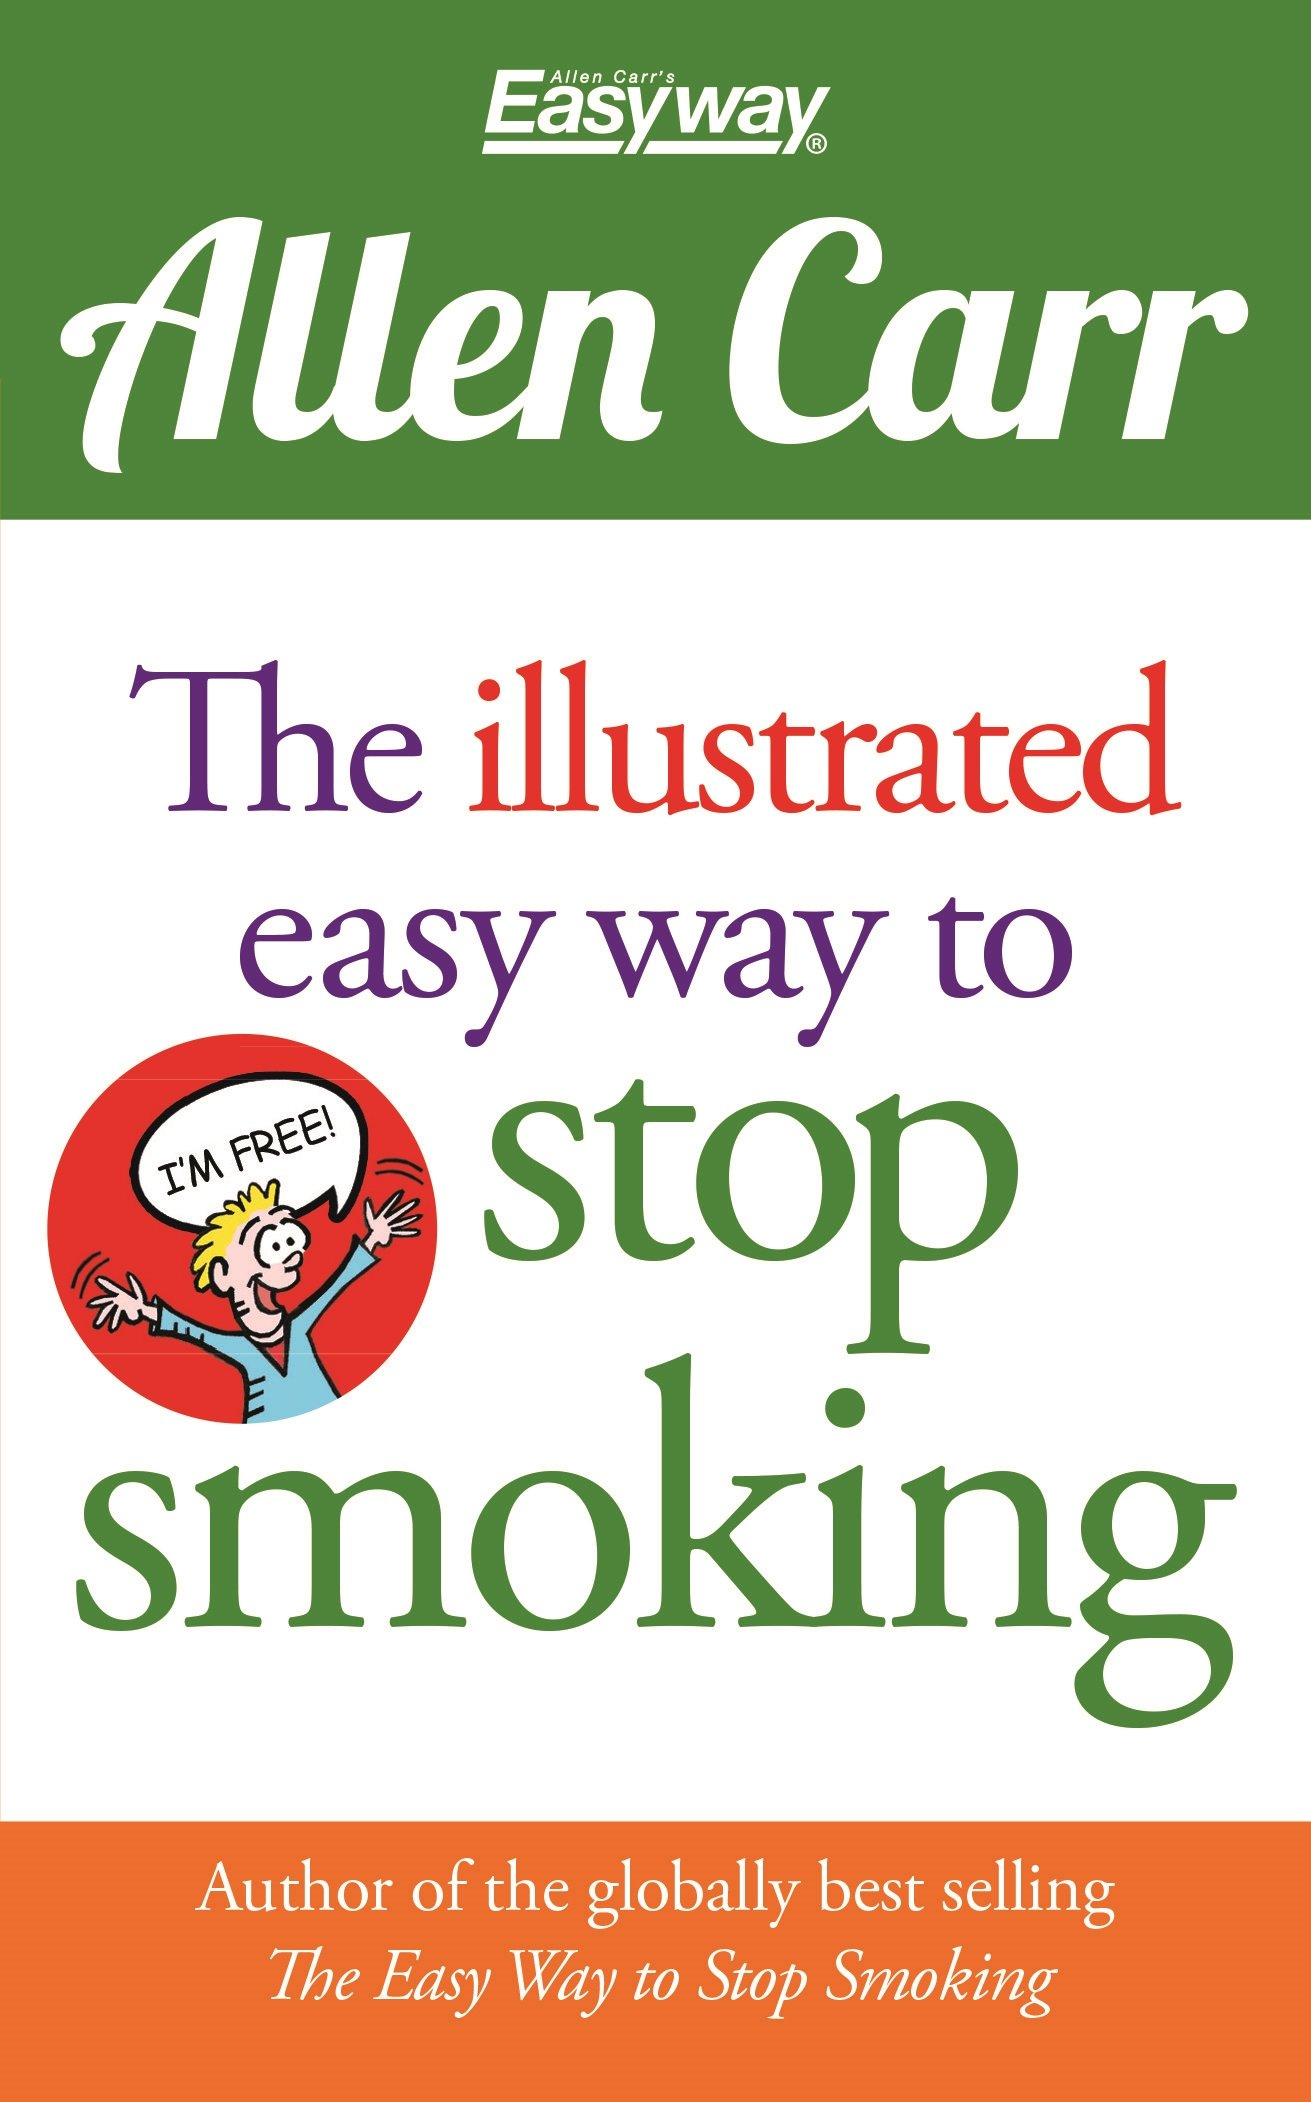 Download The Illustrated Easy Way to Stop Smoking (Allen Carr's Easyway) ebook